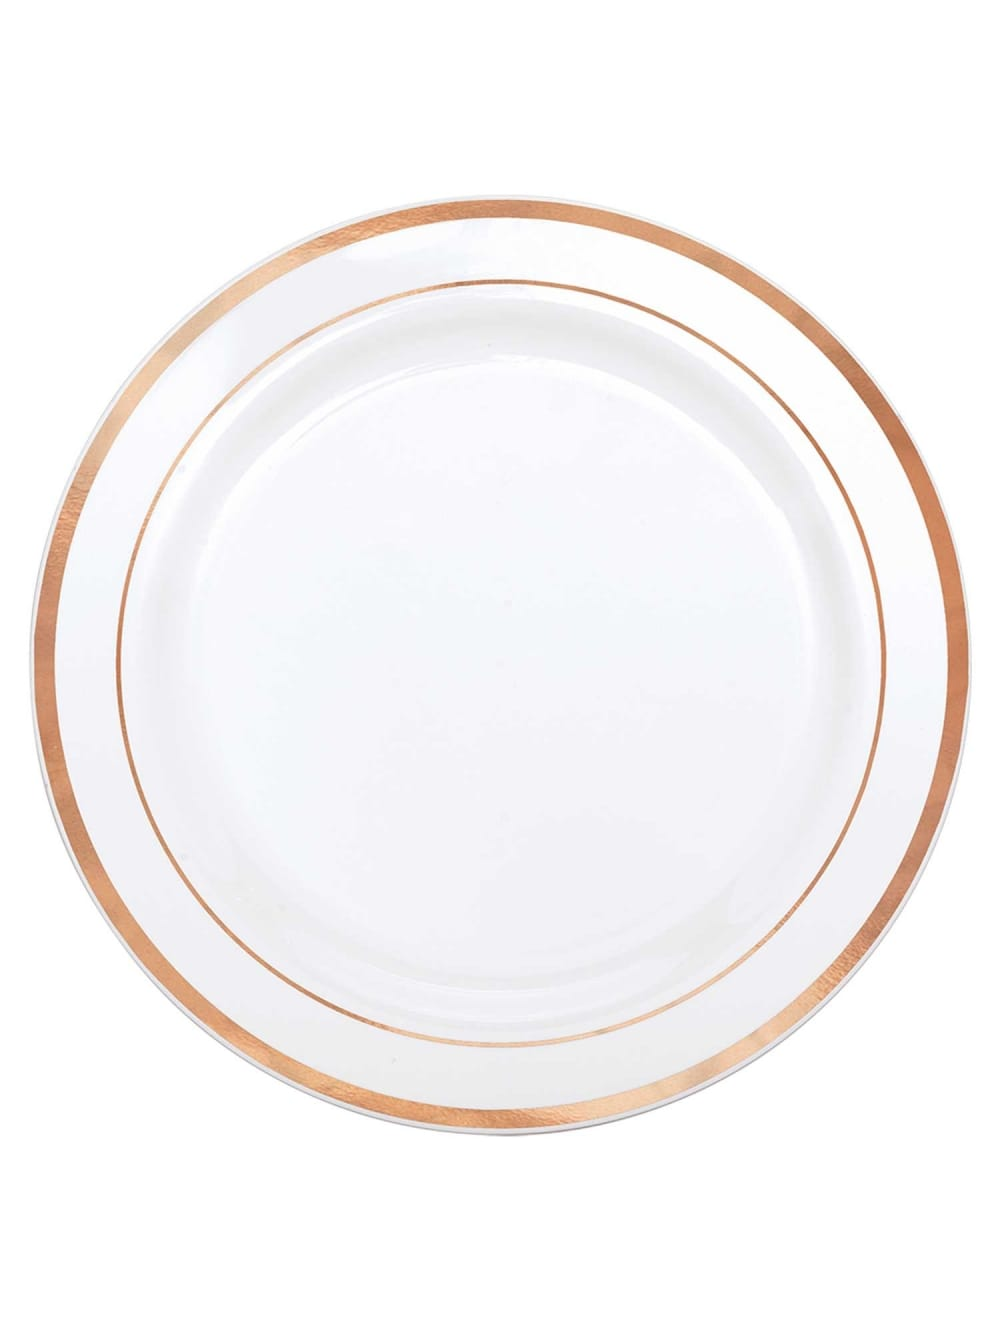 10x Large Rose Gold and White Plastic Plates  sc 1 st  Hen Party Superstore & 10x Large Rose Gold and White Plastic Plates - Partyware ...